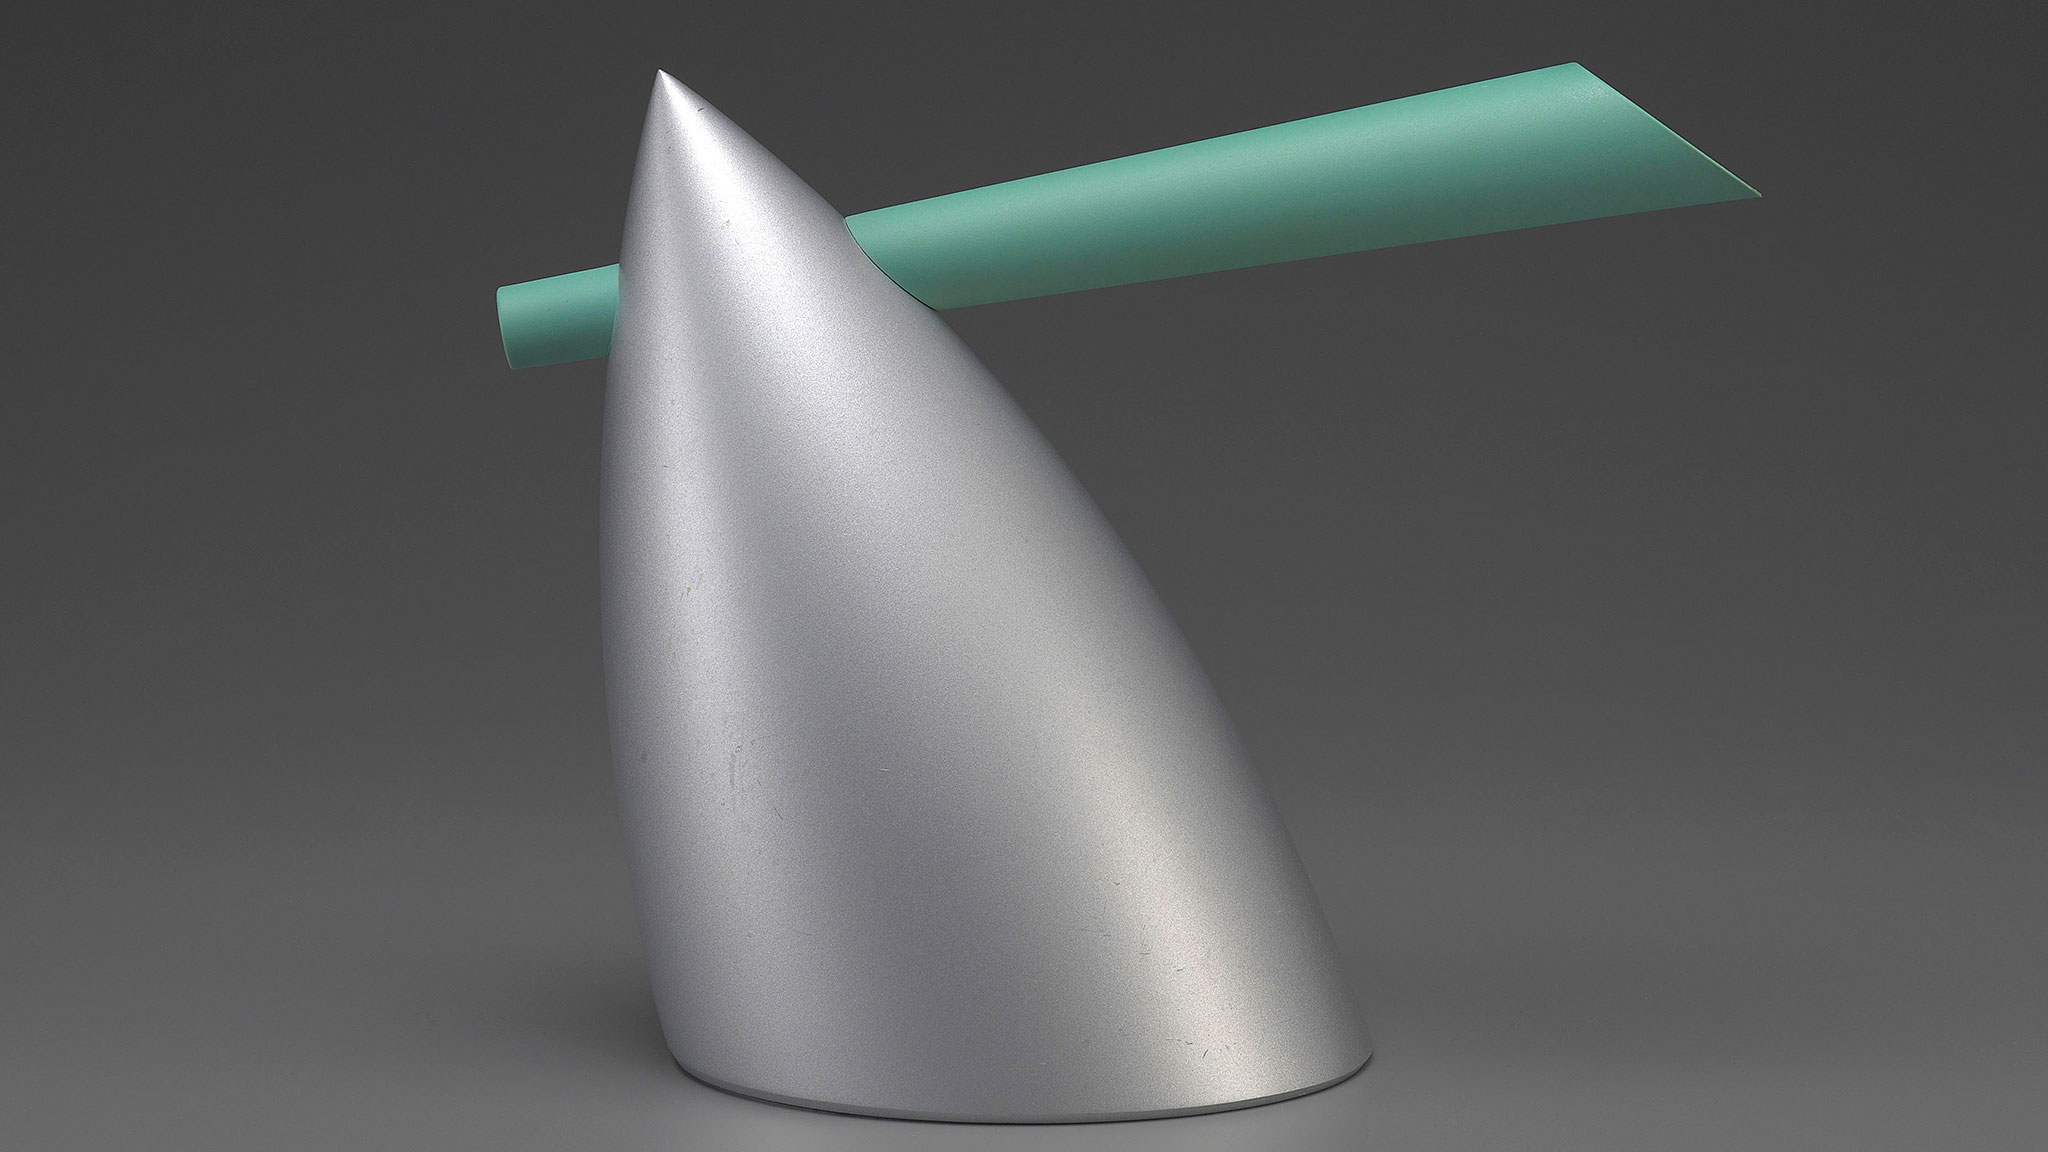 Philip Starck Design Horror The Hot Bertaa Kettle By Philippe Starck